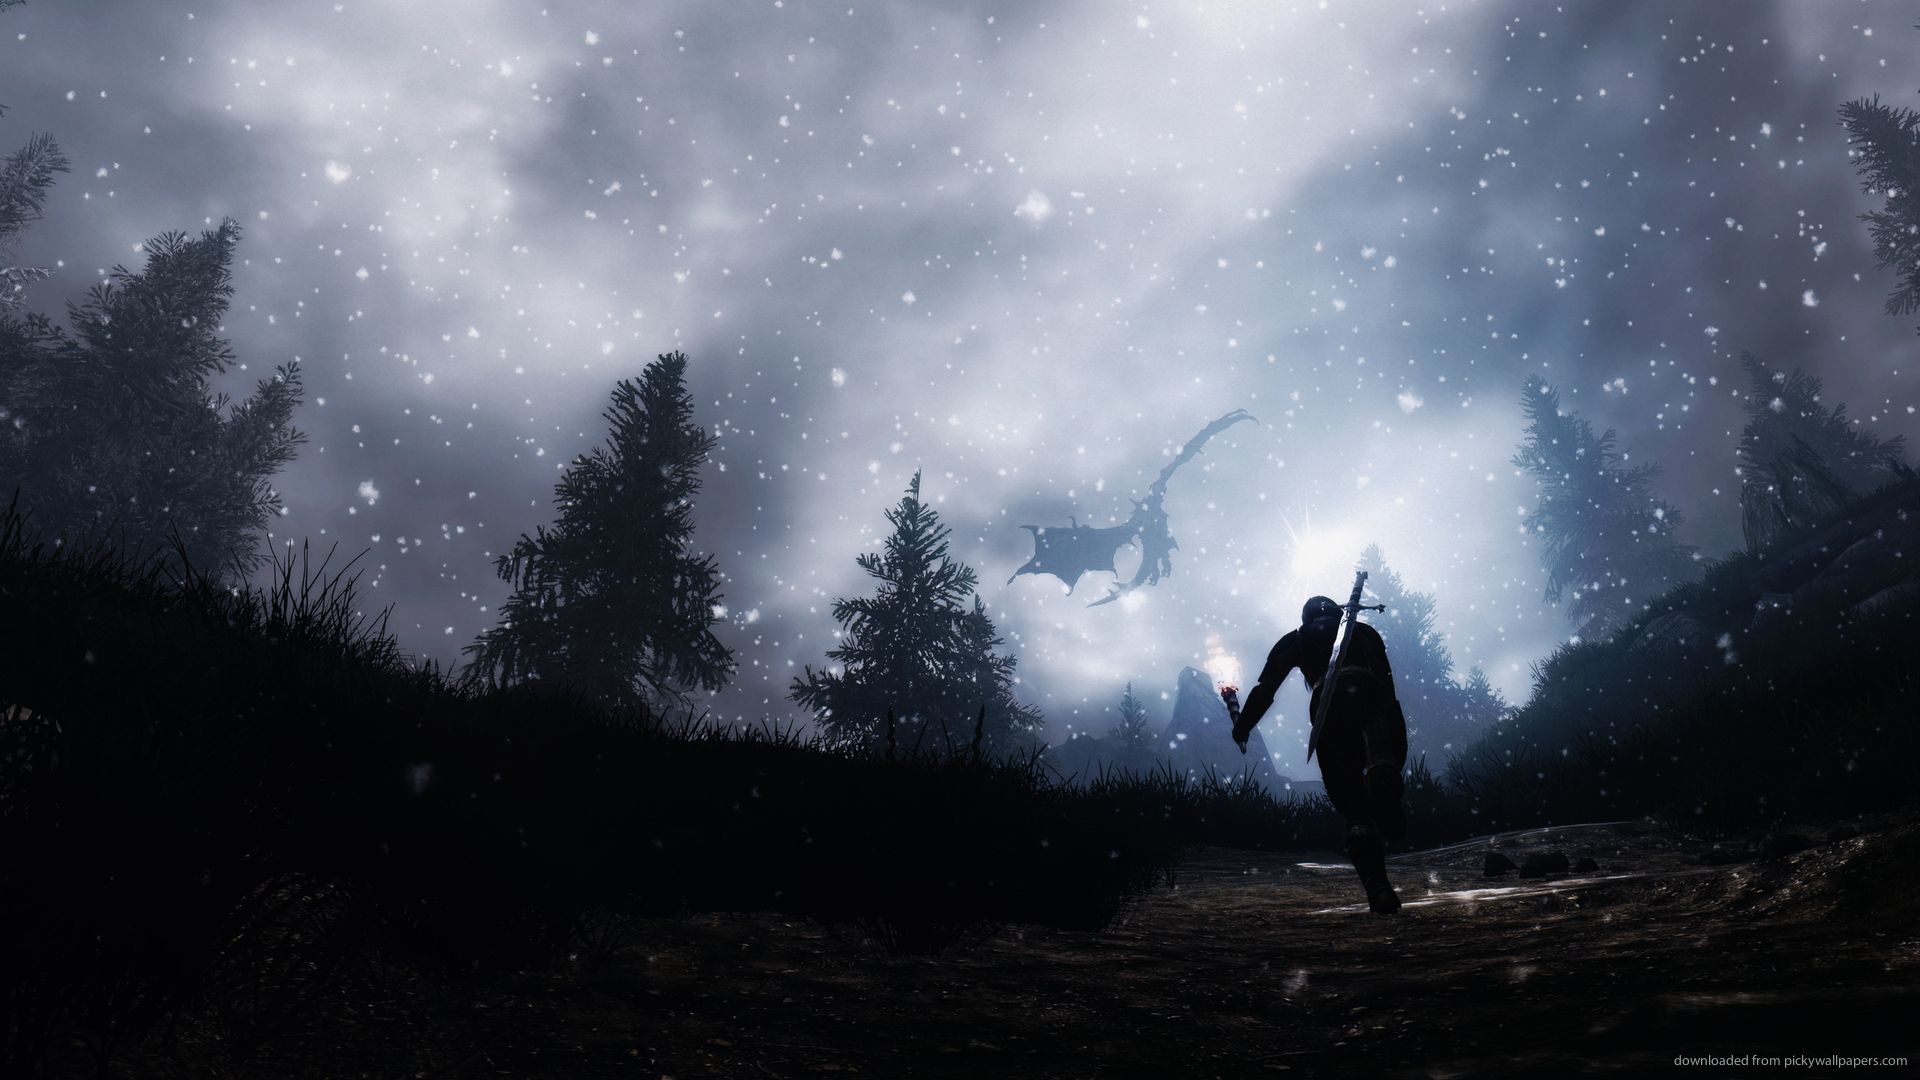 20 Skyrim Wallpapers 1920x1080p Starry Night Wallpaper Skyrim Wallpaper Starry Night Background